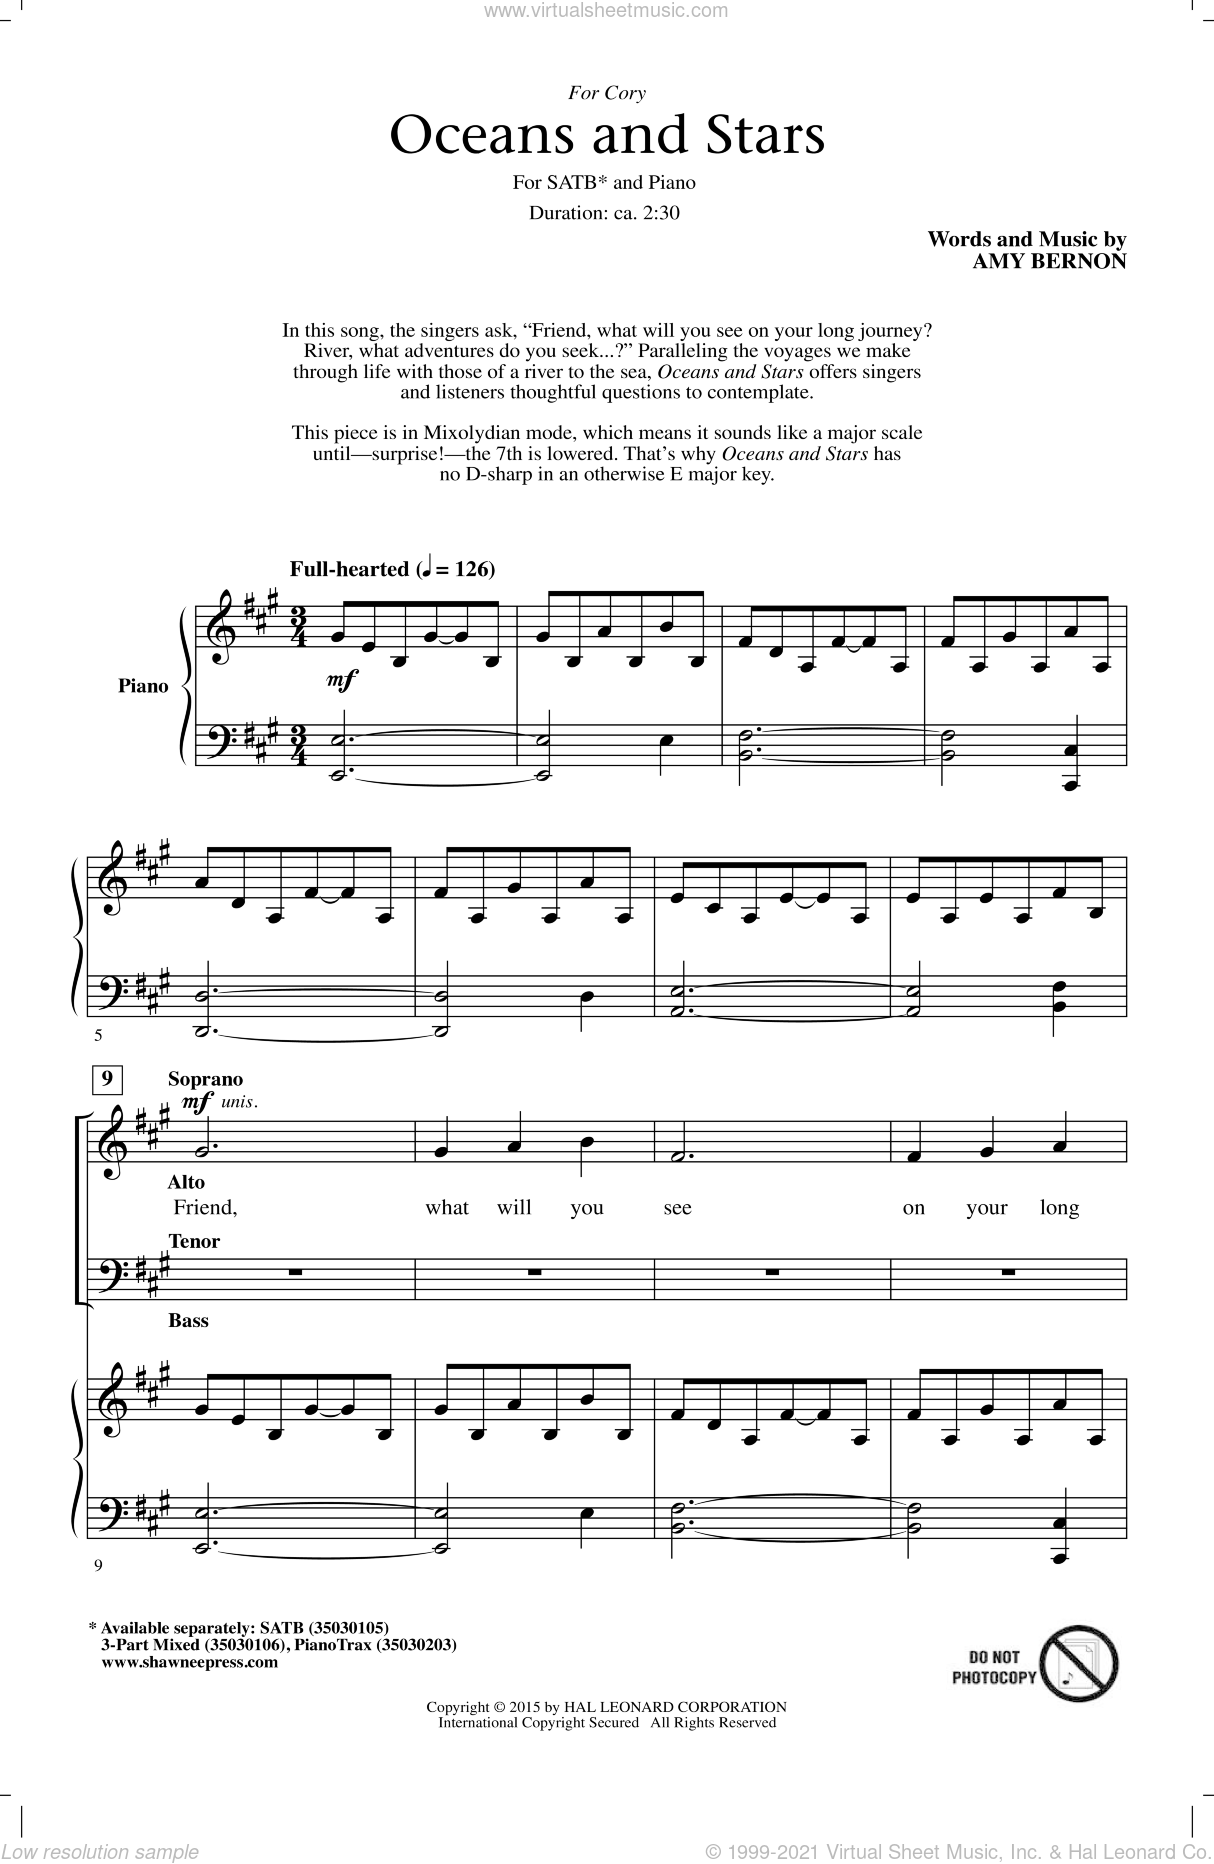 Oceans And Stars sheet music for choir and piano (SATB) by Amy Bernon